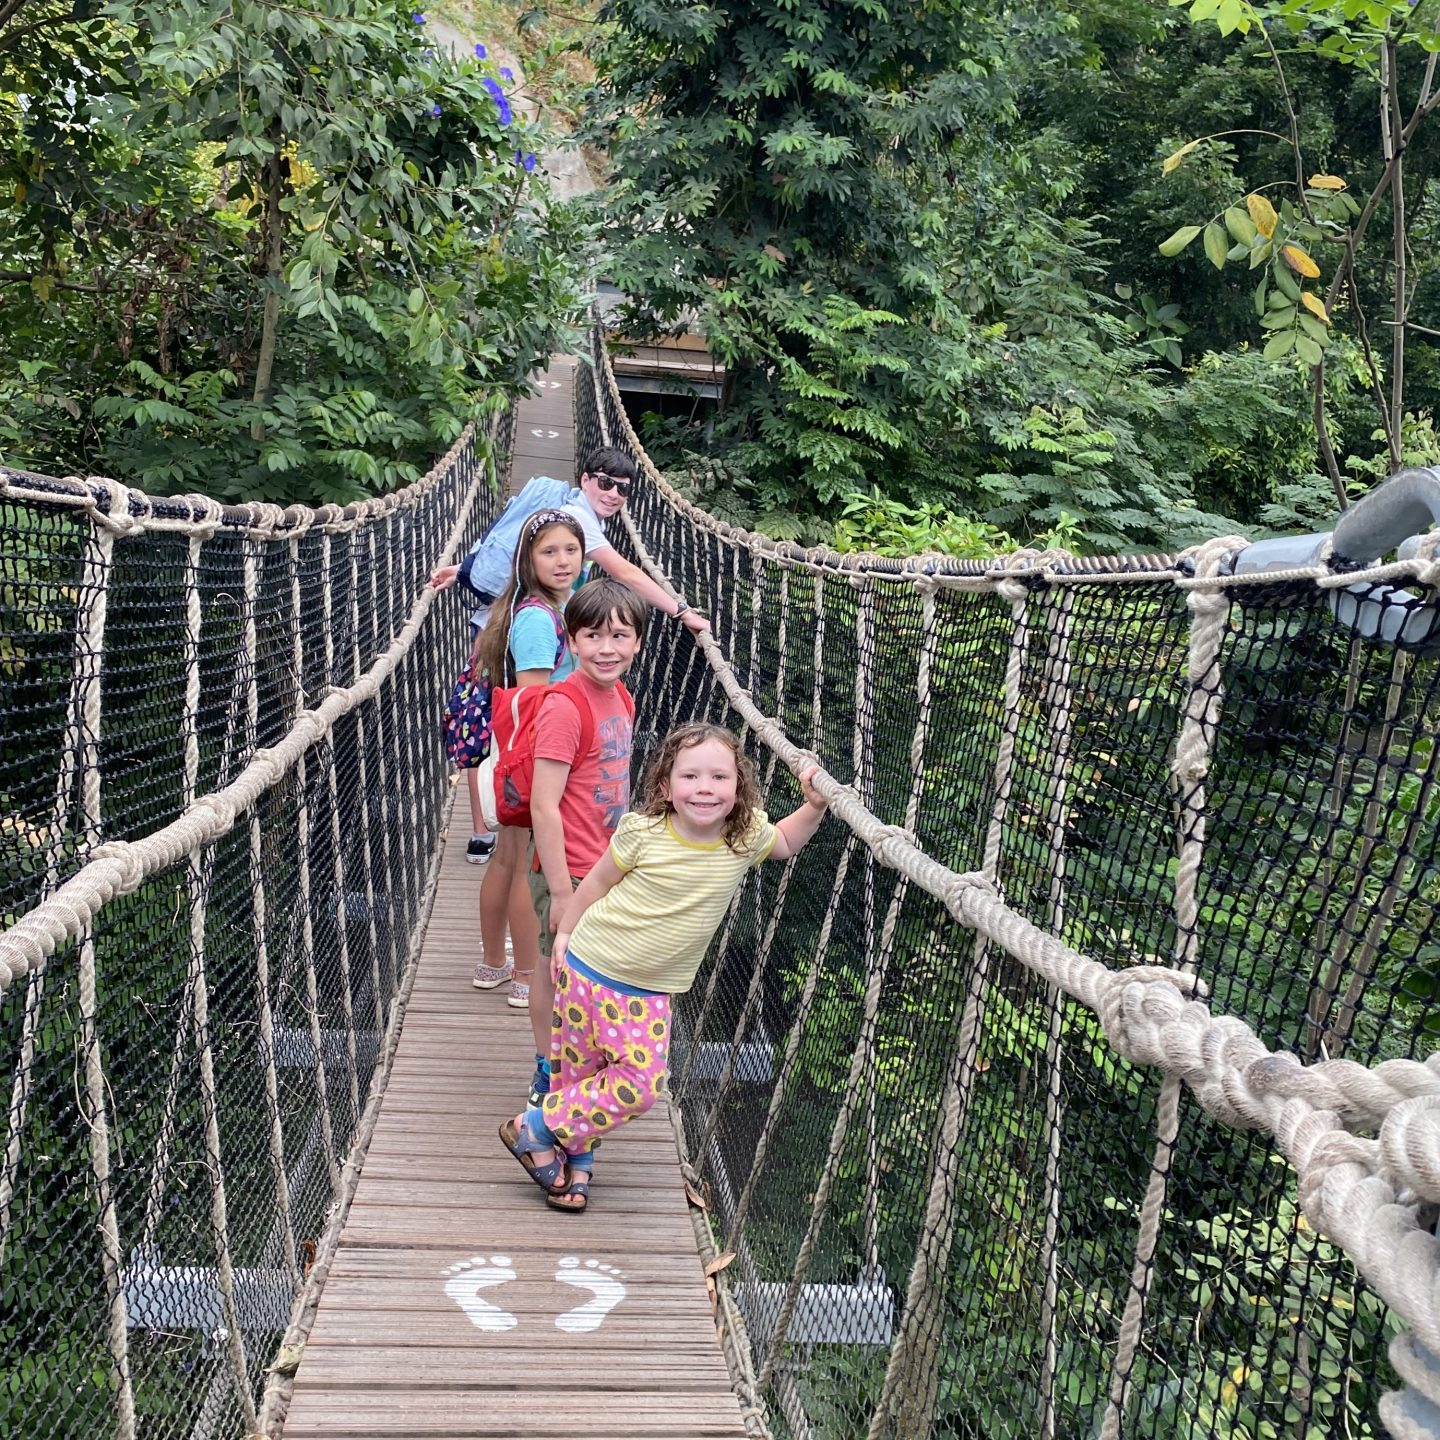 Family Road Trip in Cornwall with 4 kids in the Eden Project